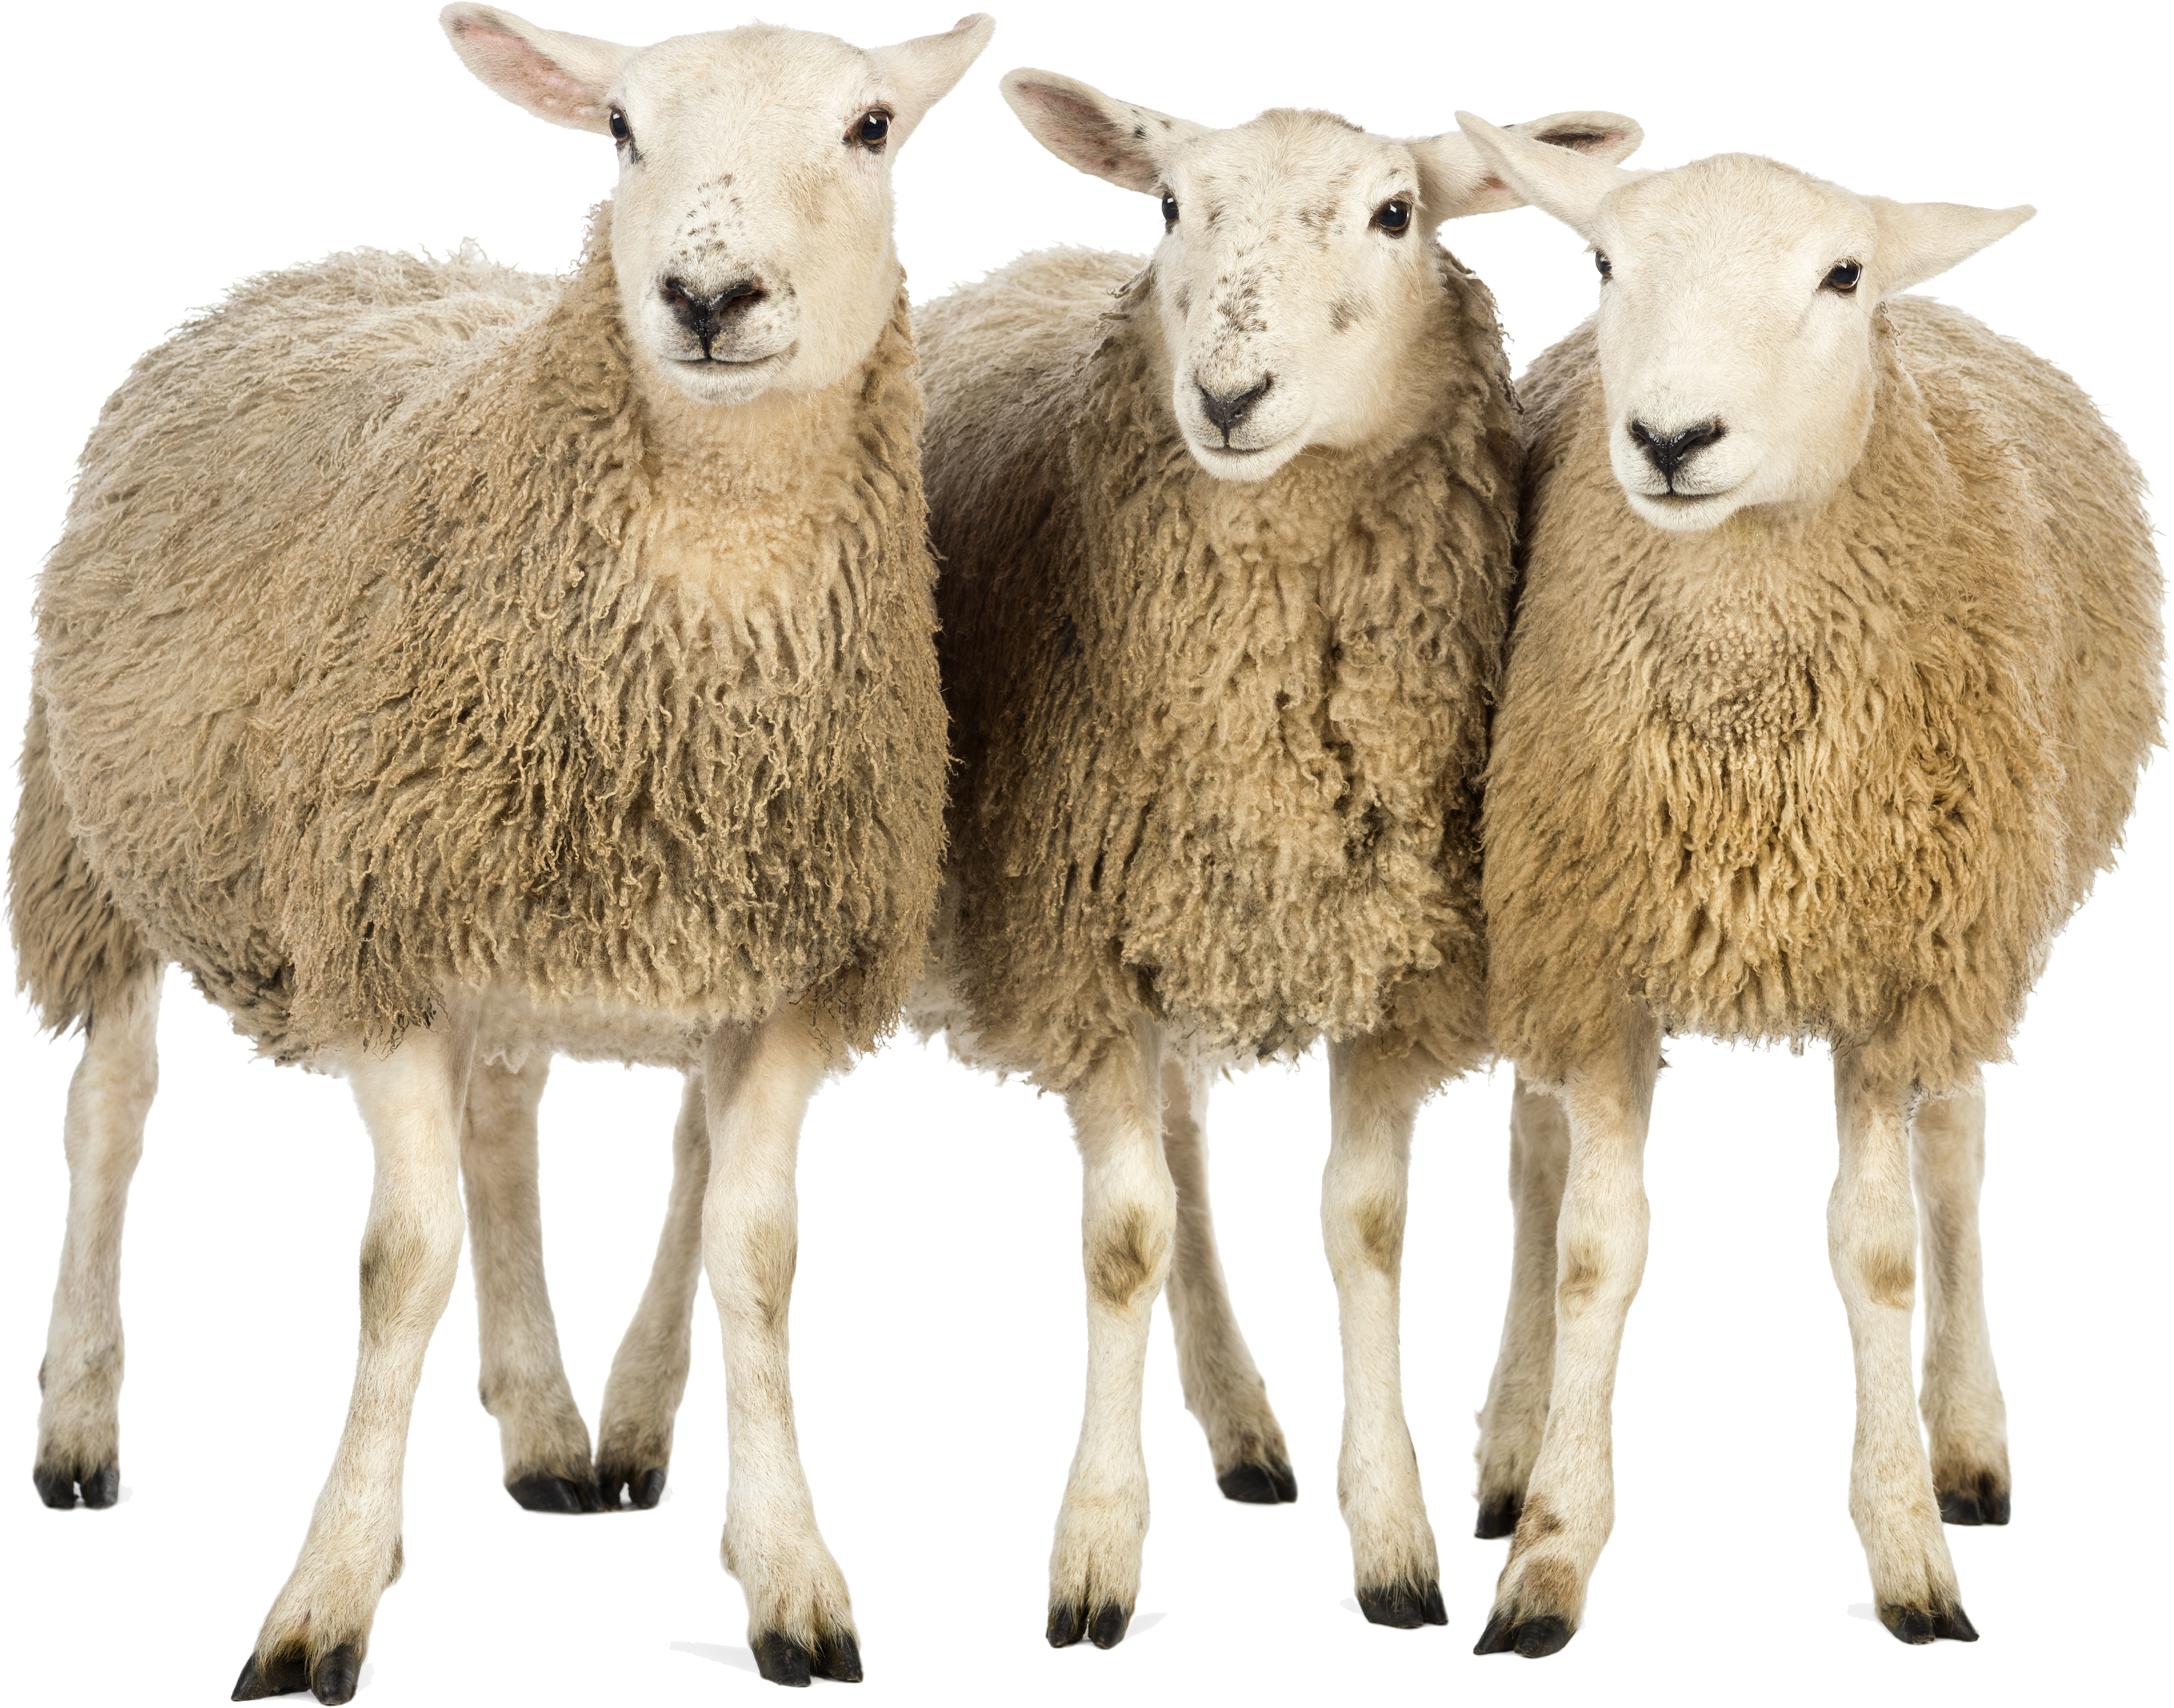 Sheep png images. Transparent pictures free icons